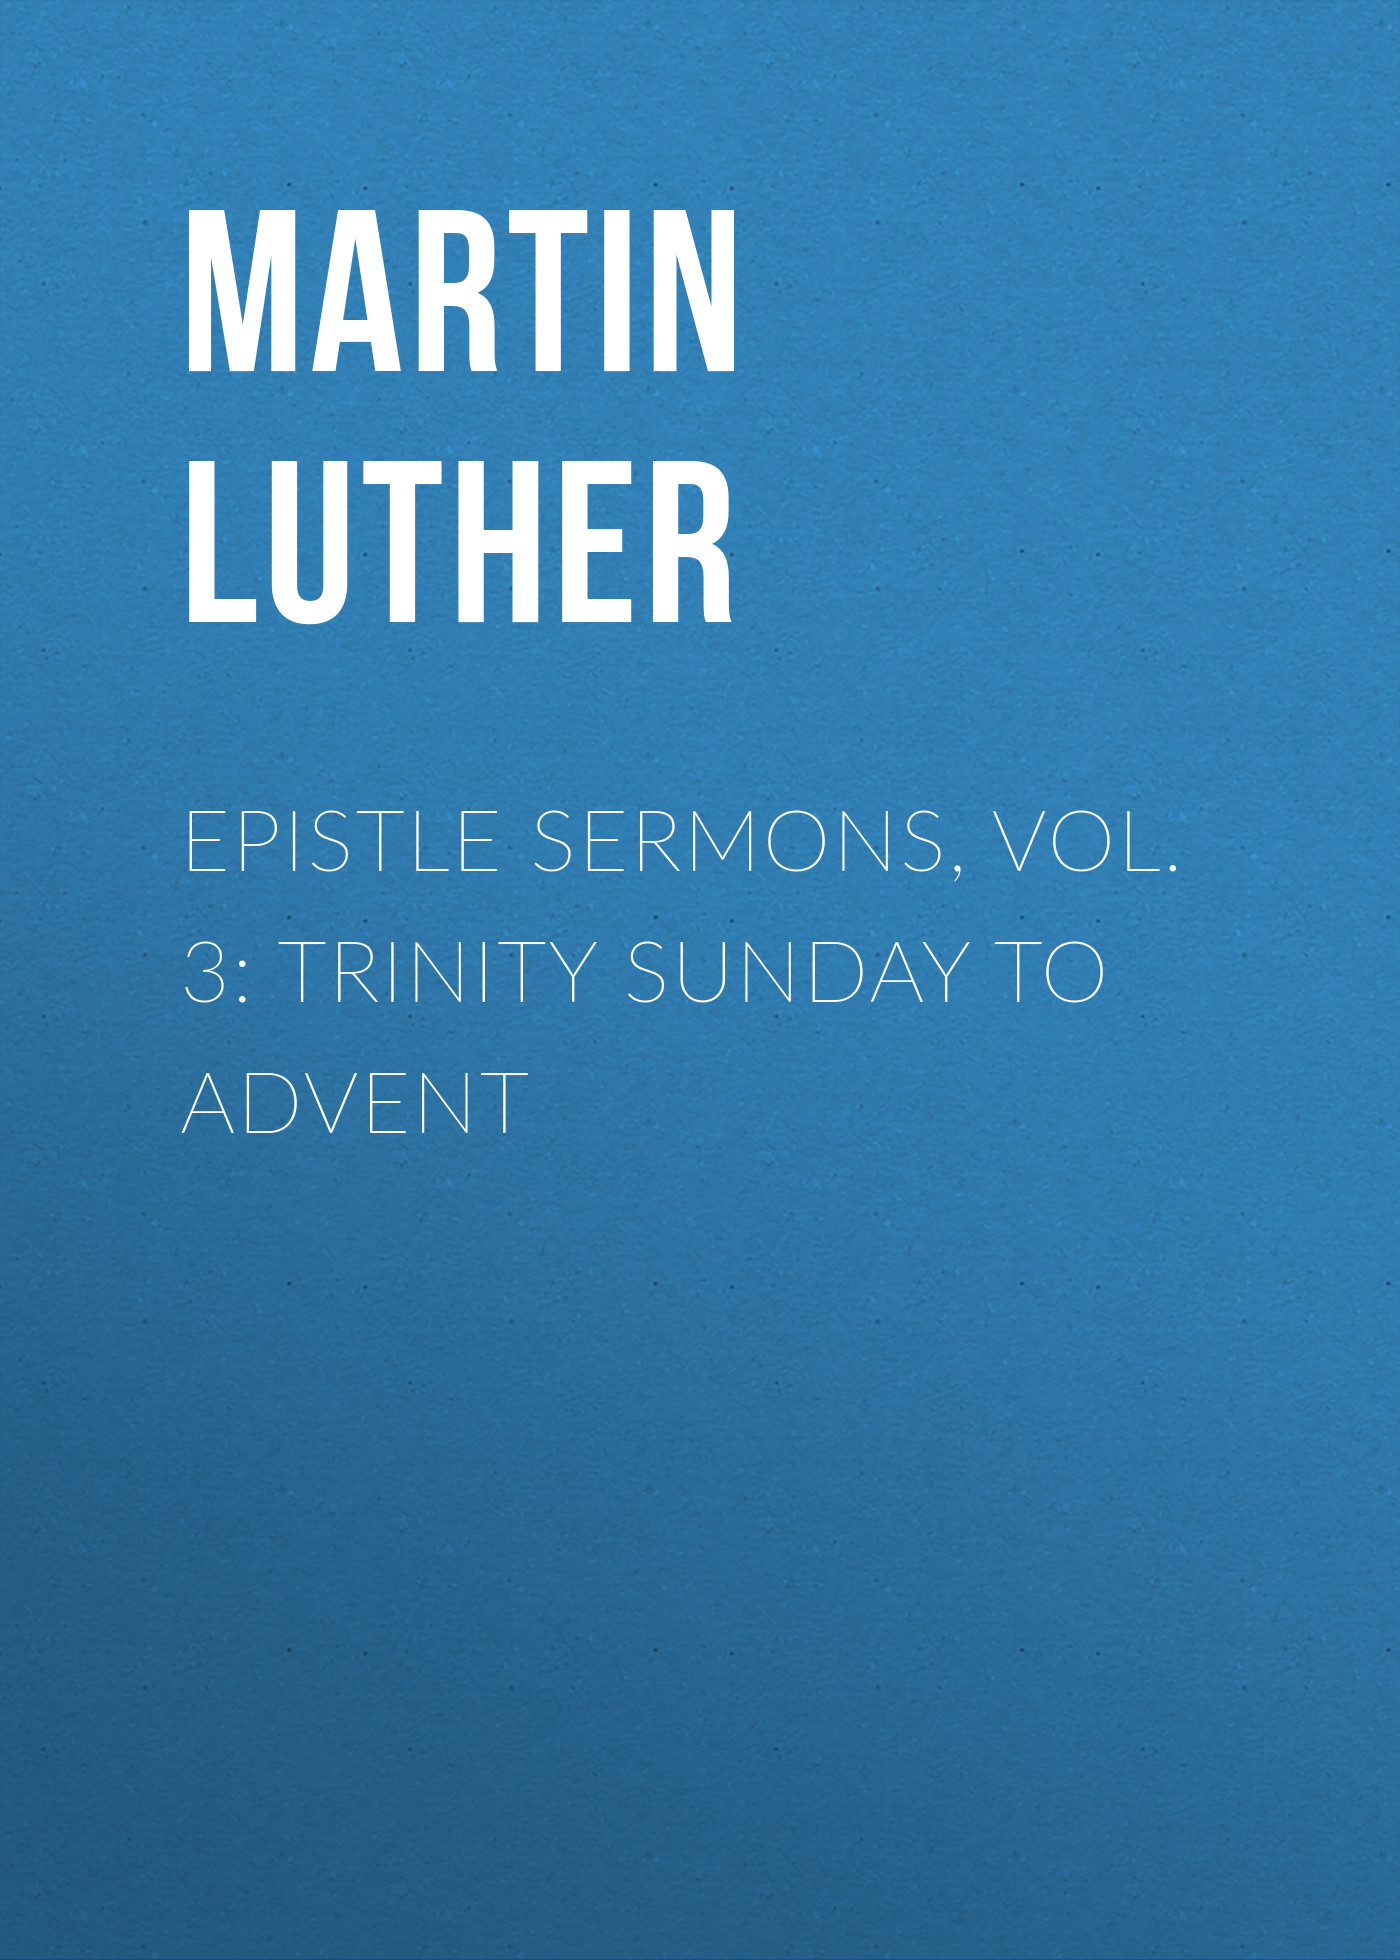 Martin Luther Epistle Sermons, Vol. 3: Trinity Sunday to Advent m luther luther s letters to women